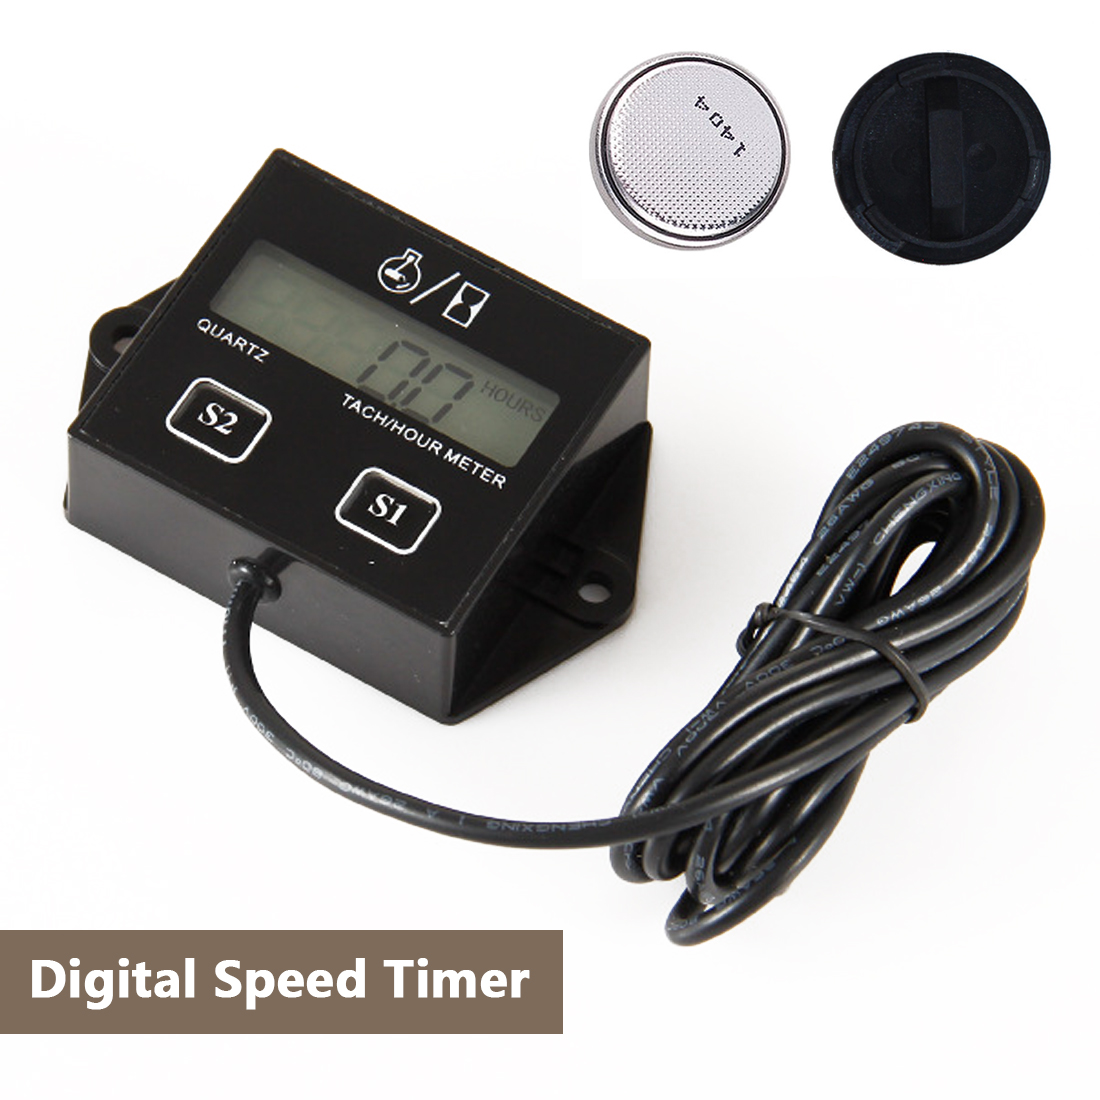 Car Digital Engine Tach Tachometer Hour Meter With Wire Inductive For Motorcycle Car Motor Stroke Engine Replaceable Battery